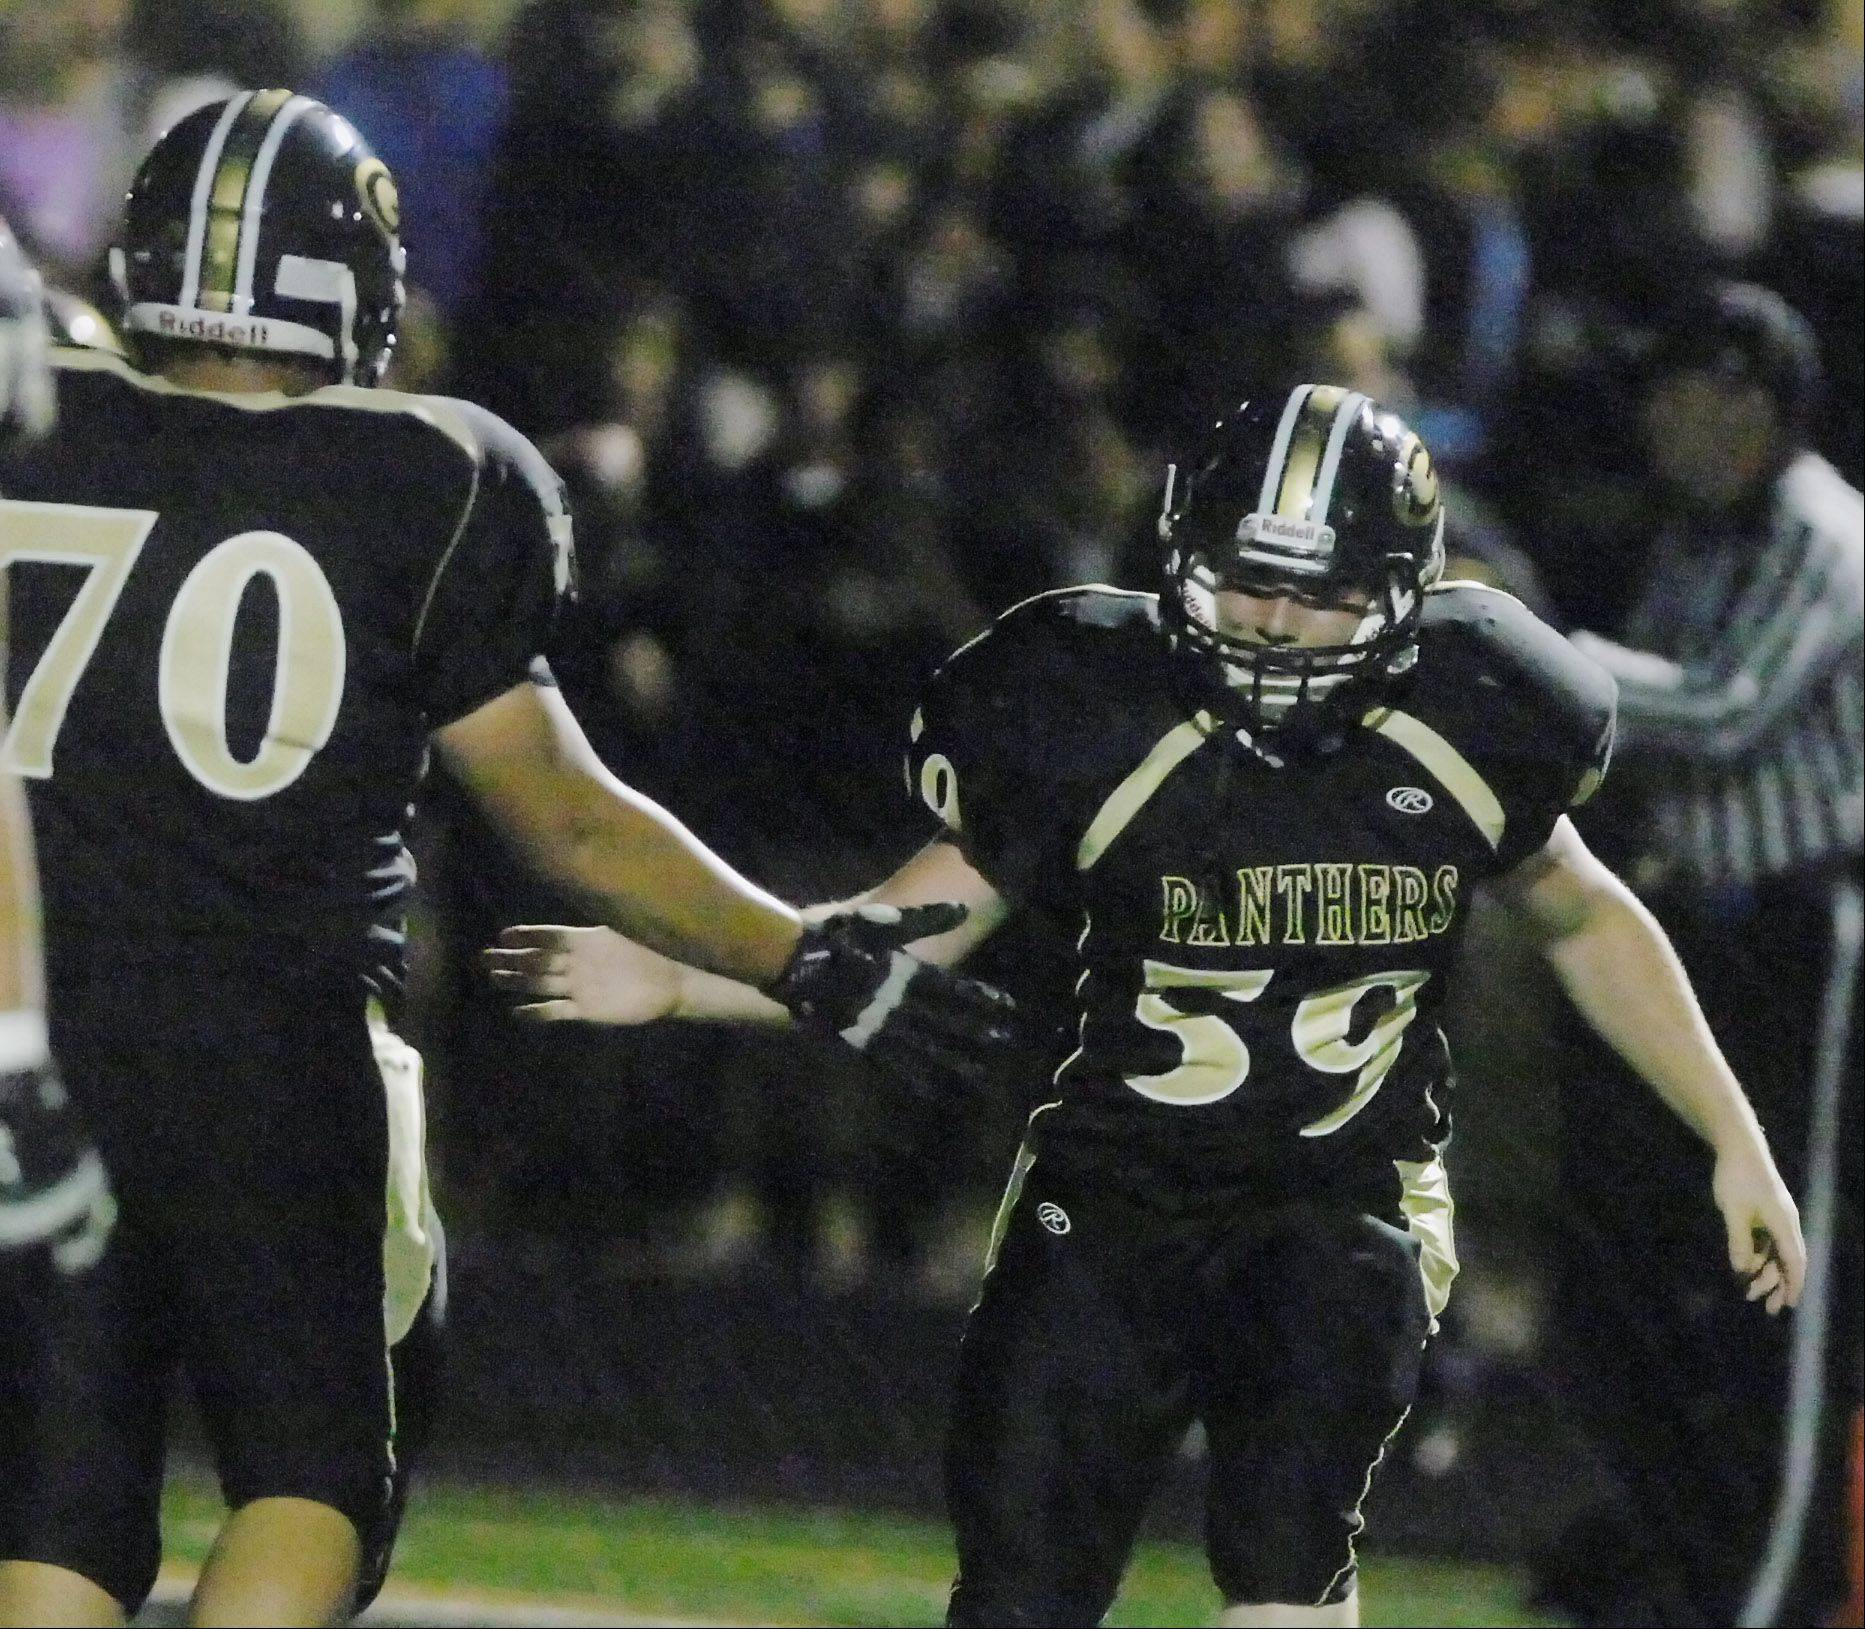 Mitch Siver,left, and Ethan Hernandez both of Glenbard North celebrate after a TD during game action Friday against Naperville Central.